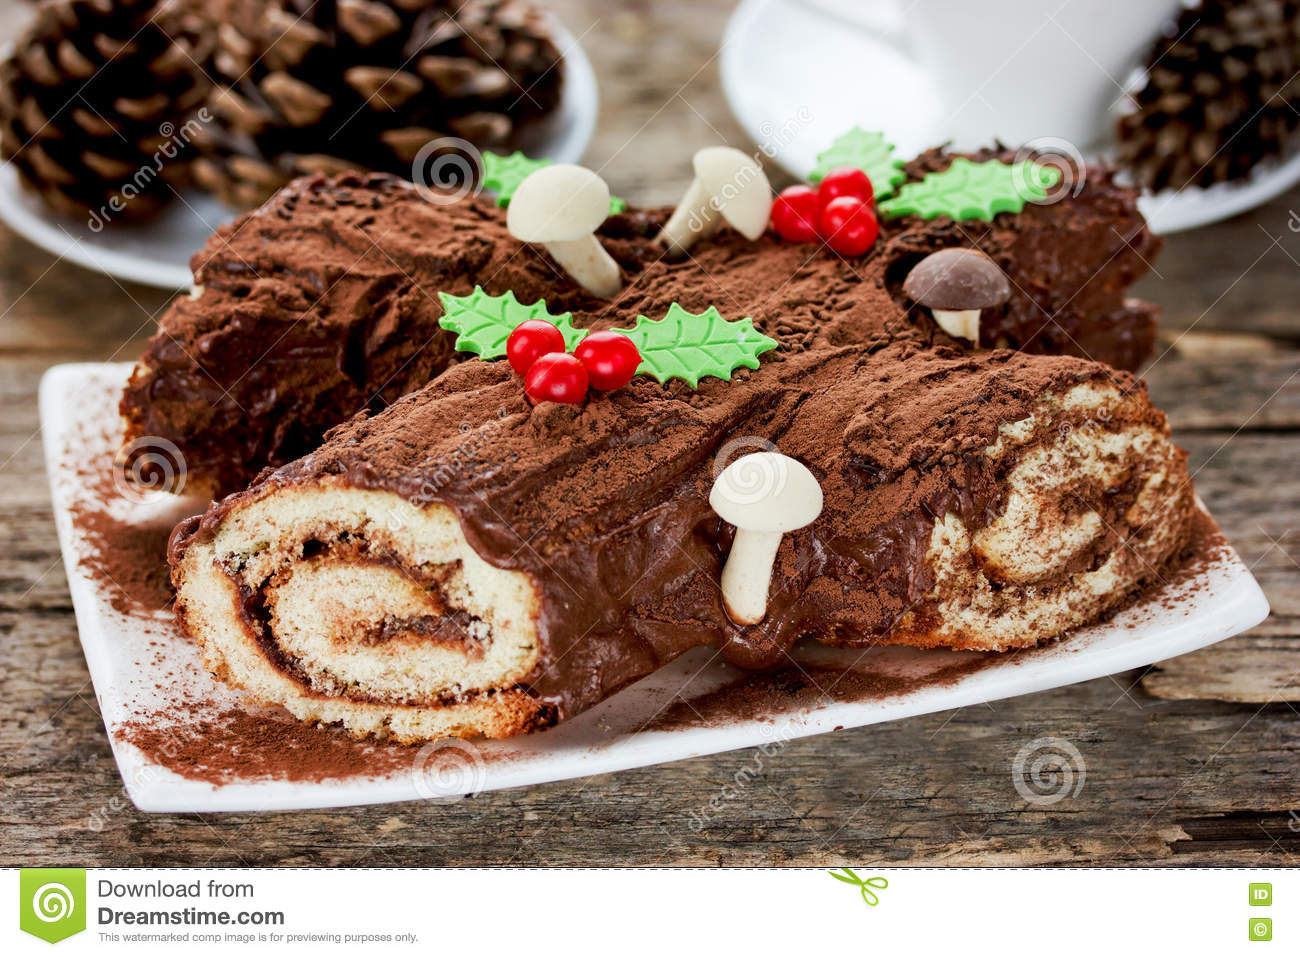 Christmas Yule Log Cake.Christmas Yule Log Cake Decorated With Chocolate Holly